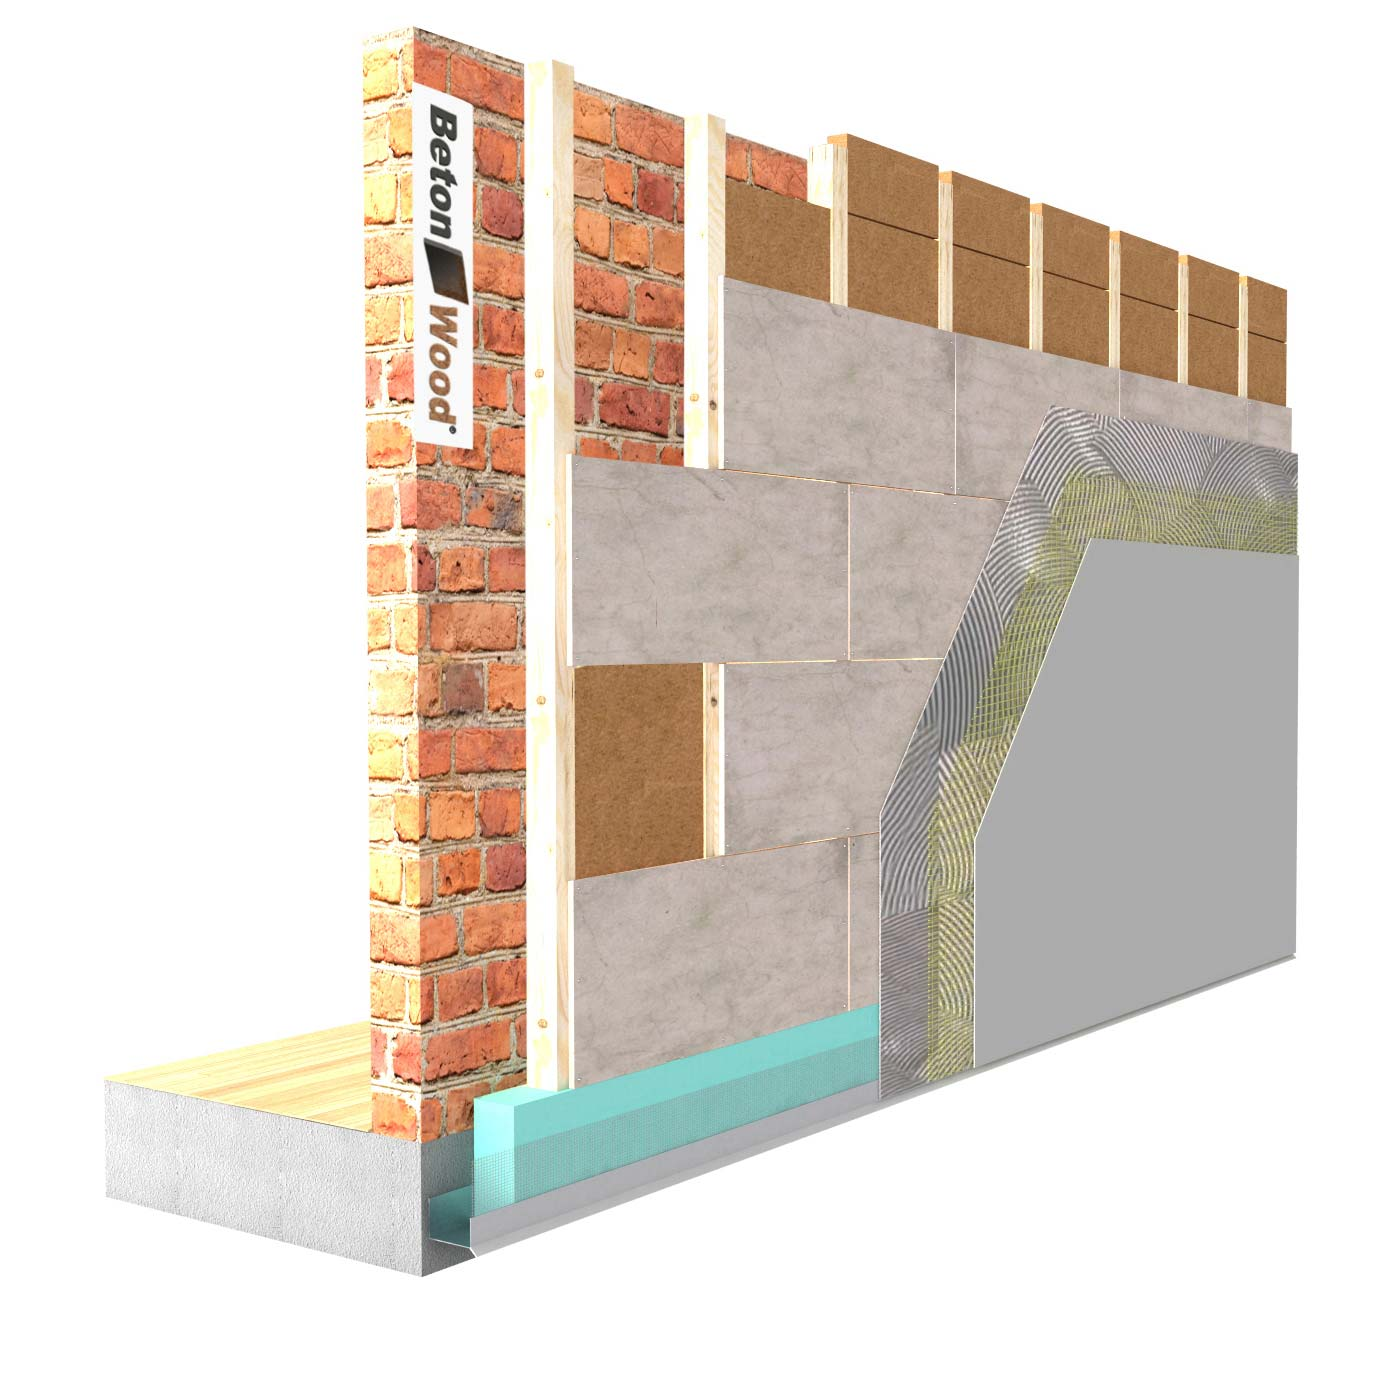 External insulation system with Protect dry fiber wood on masonry